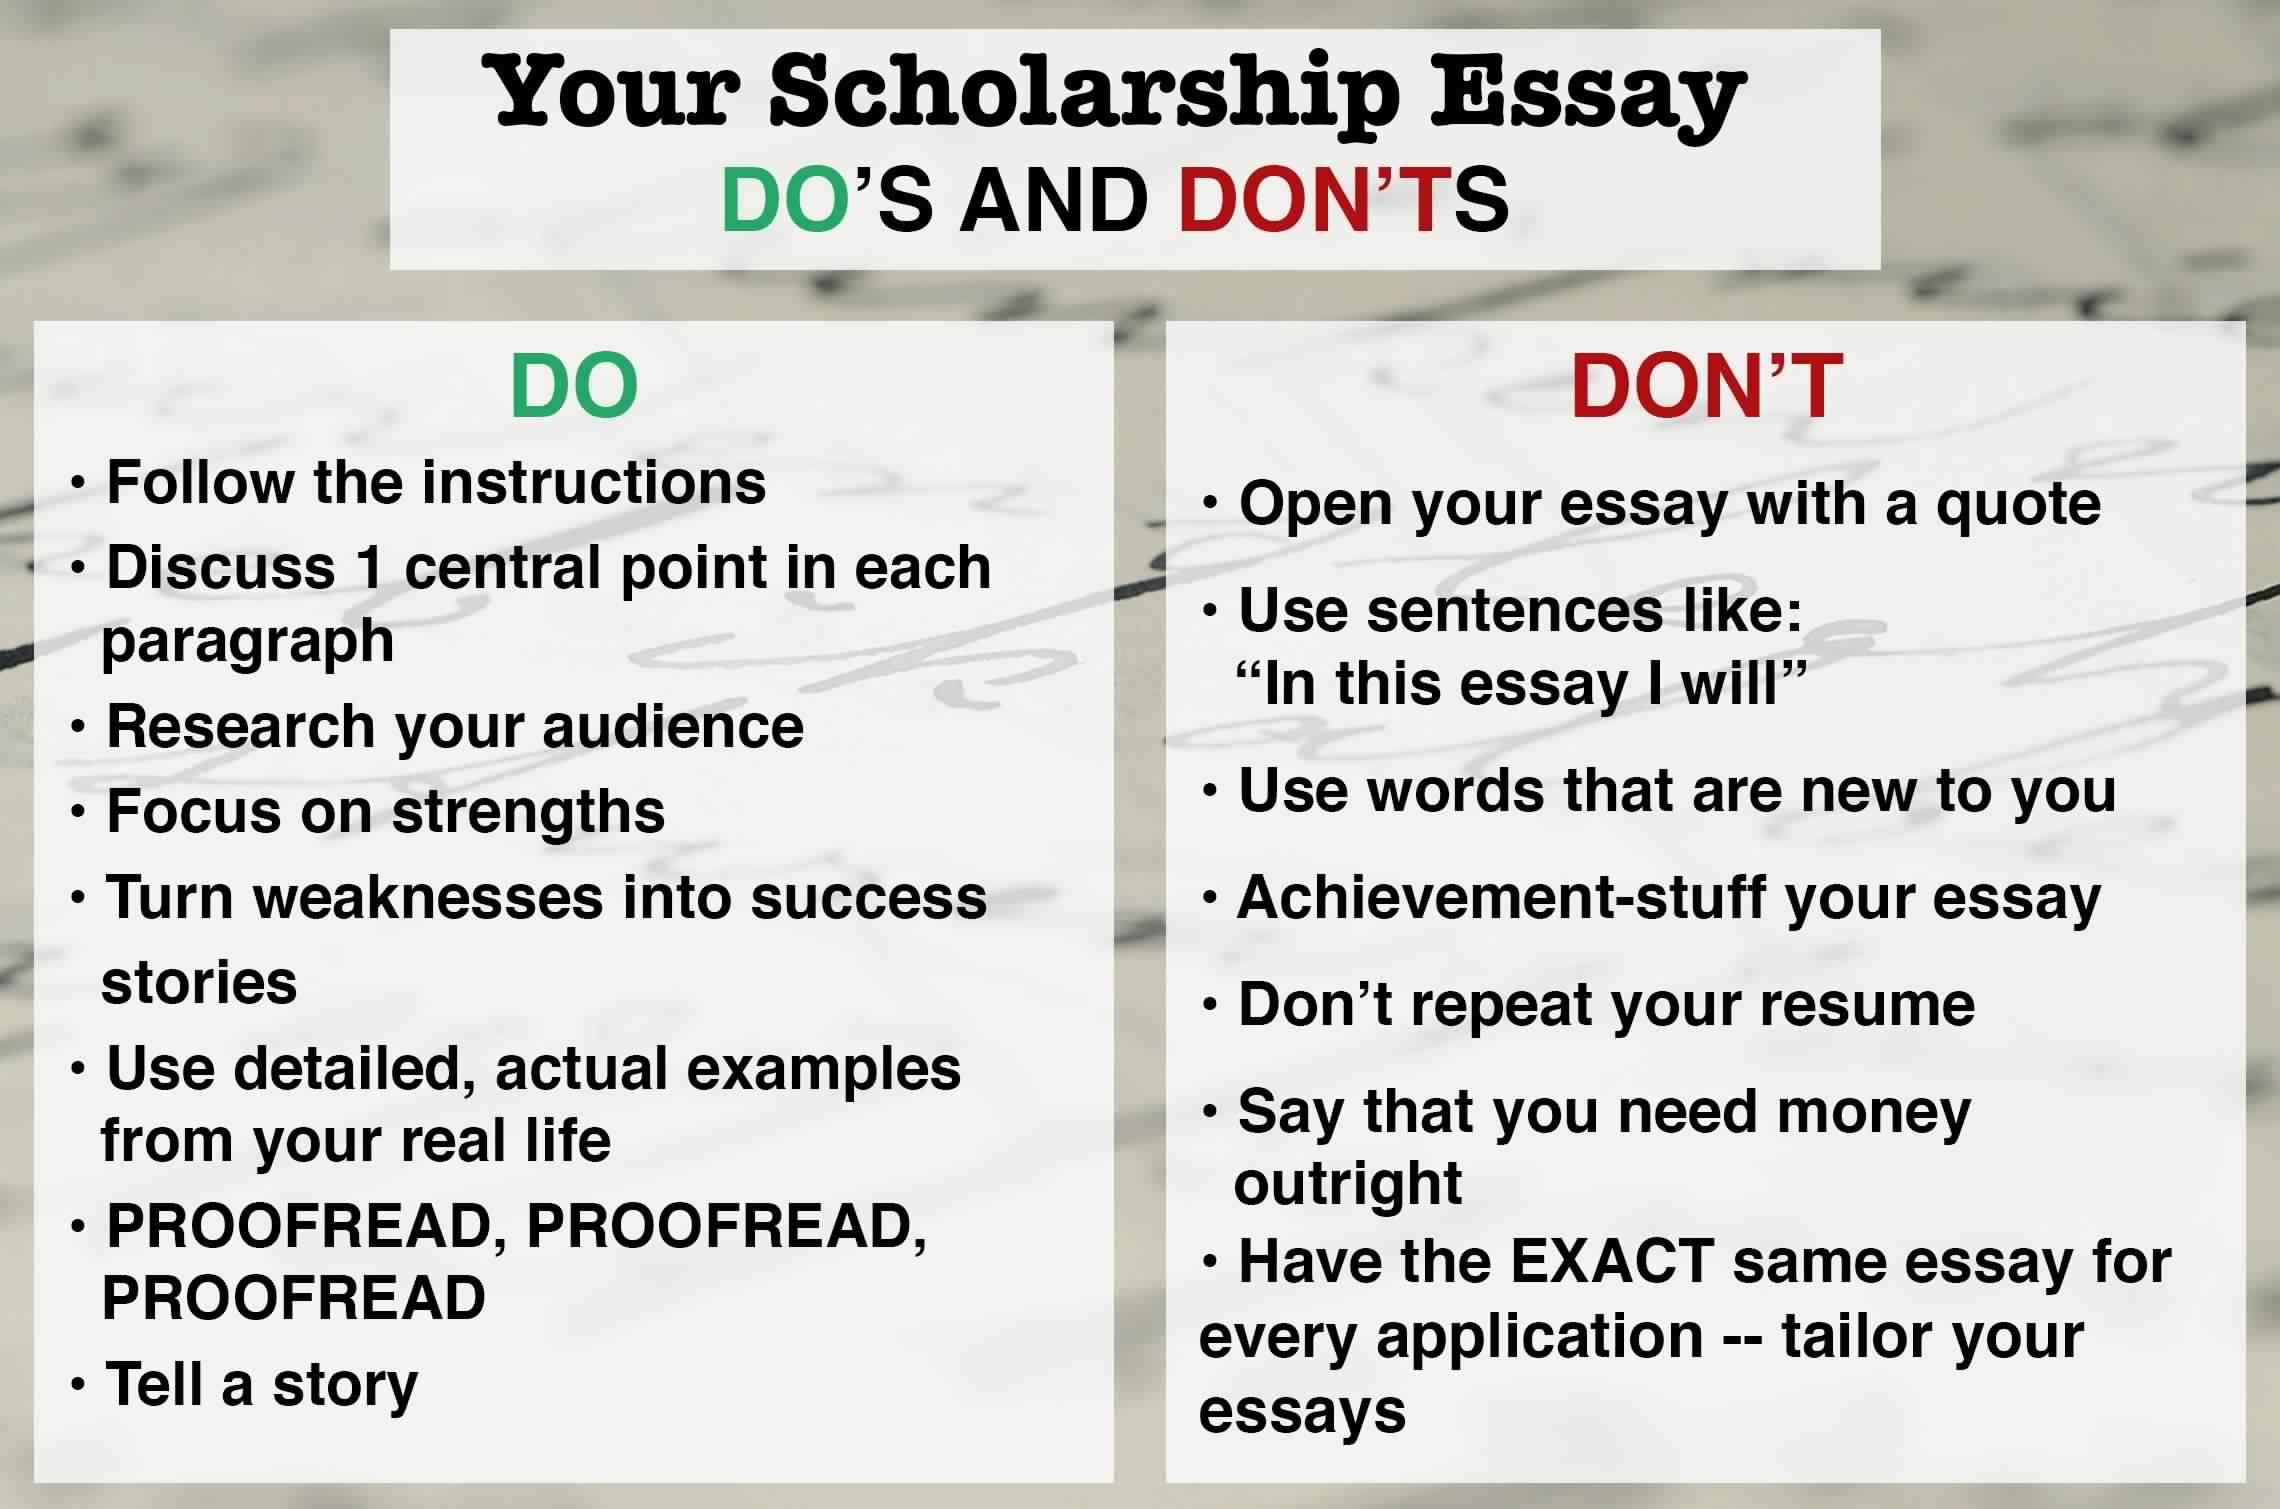 How to write a good application essay 4 college